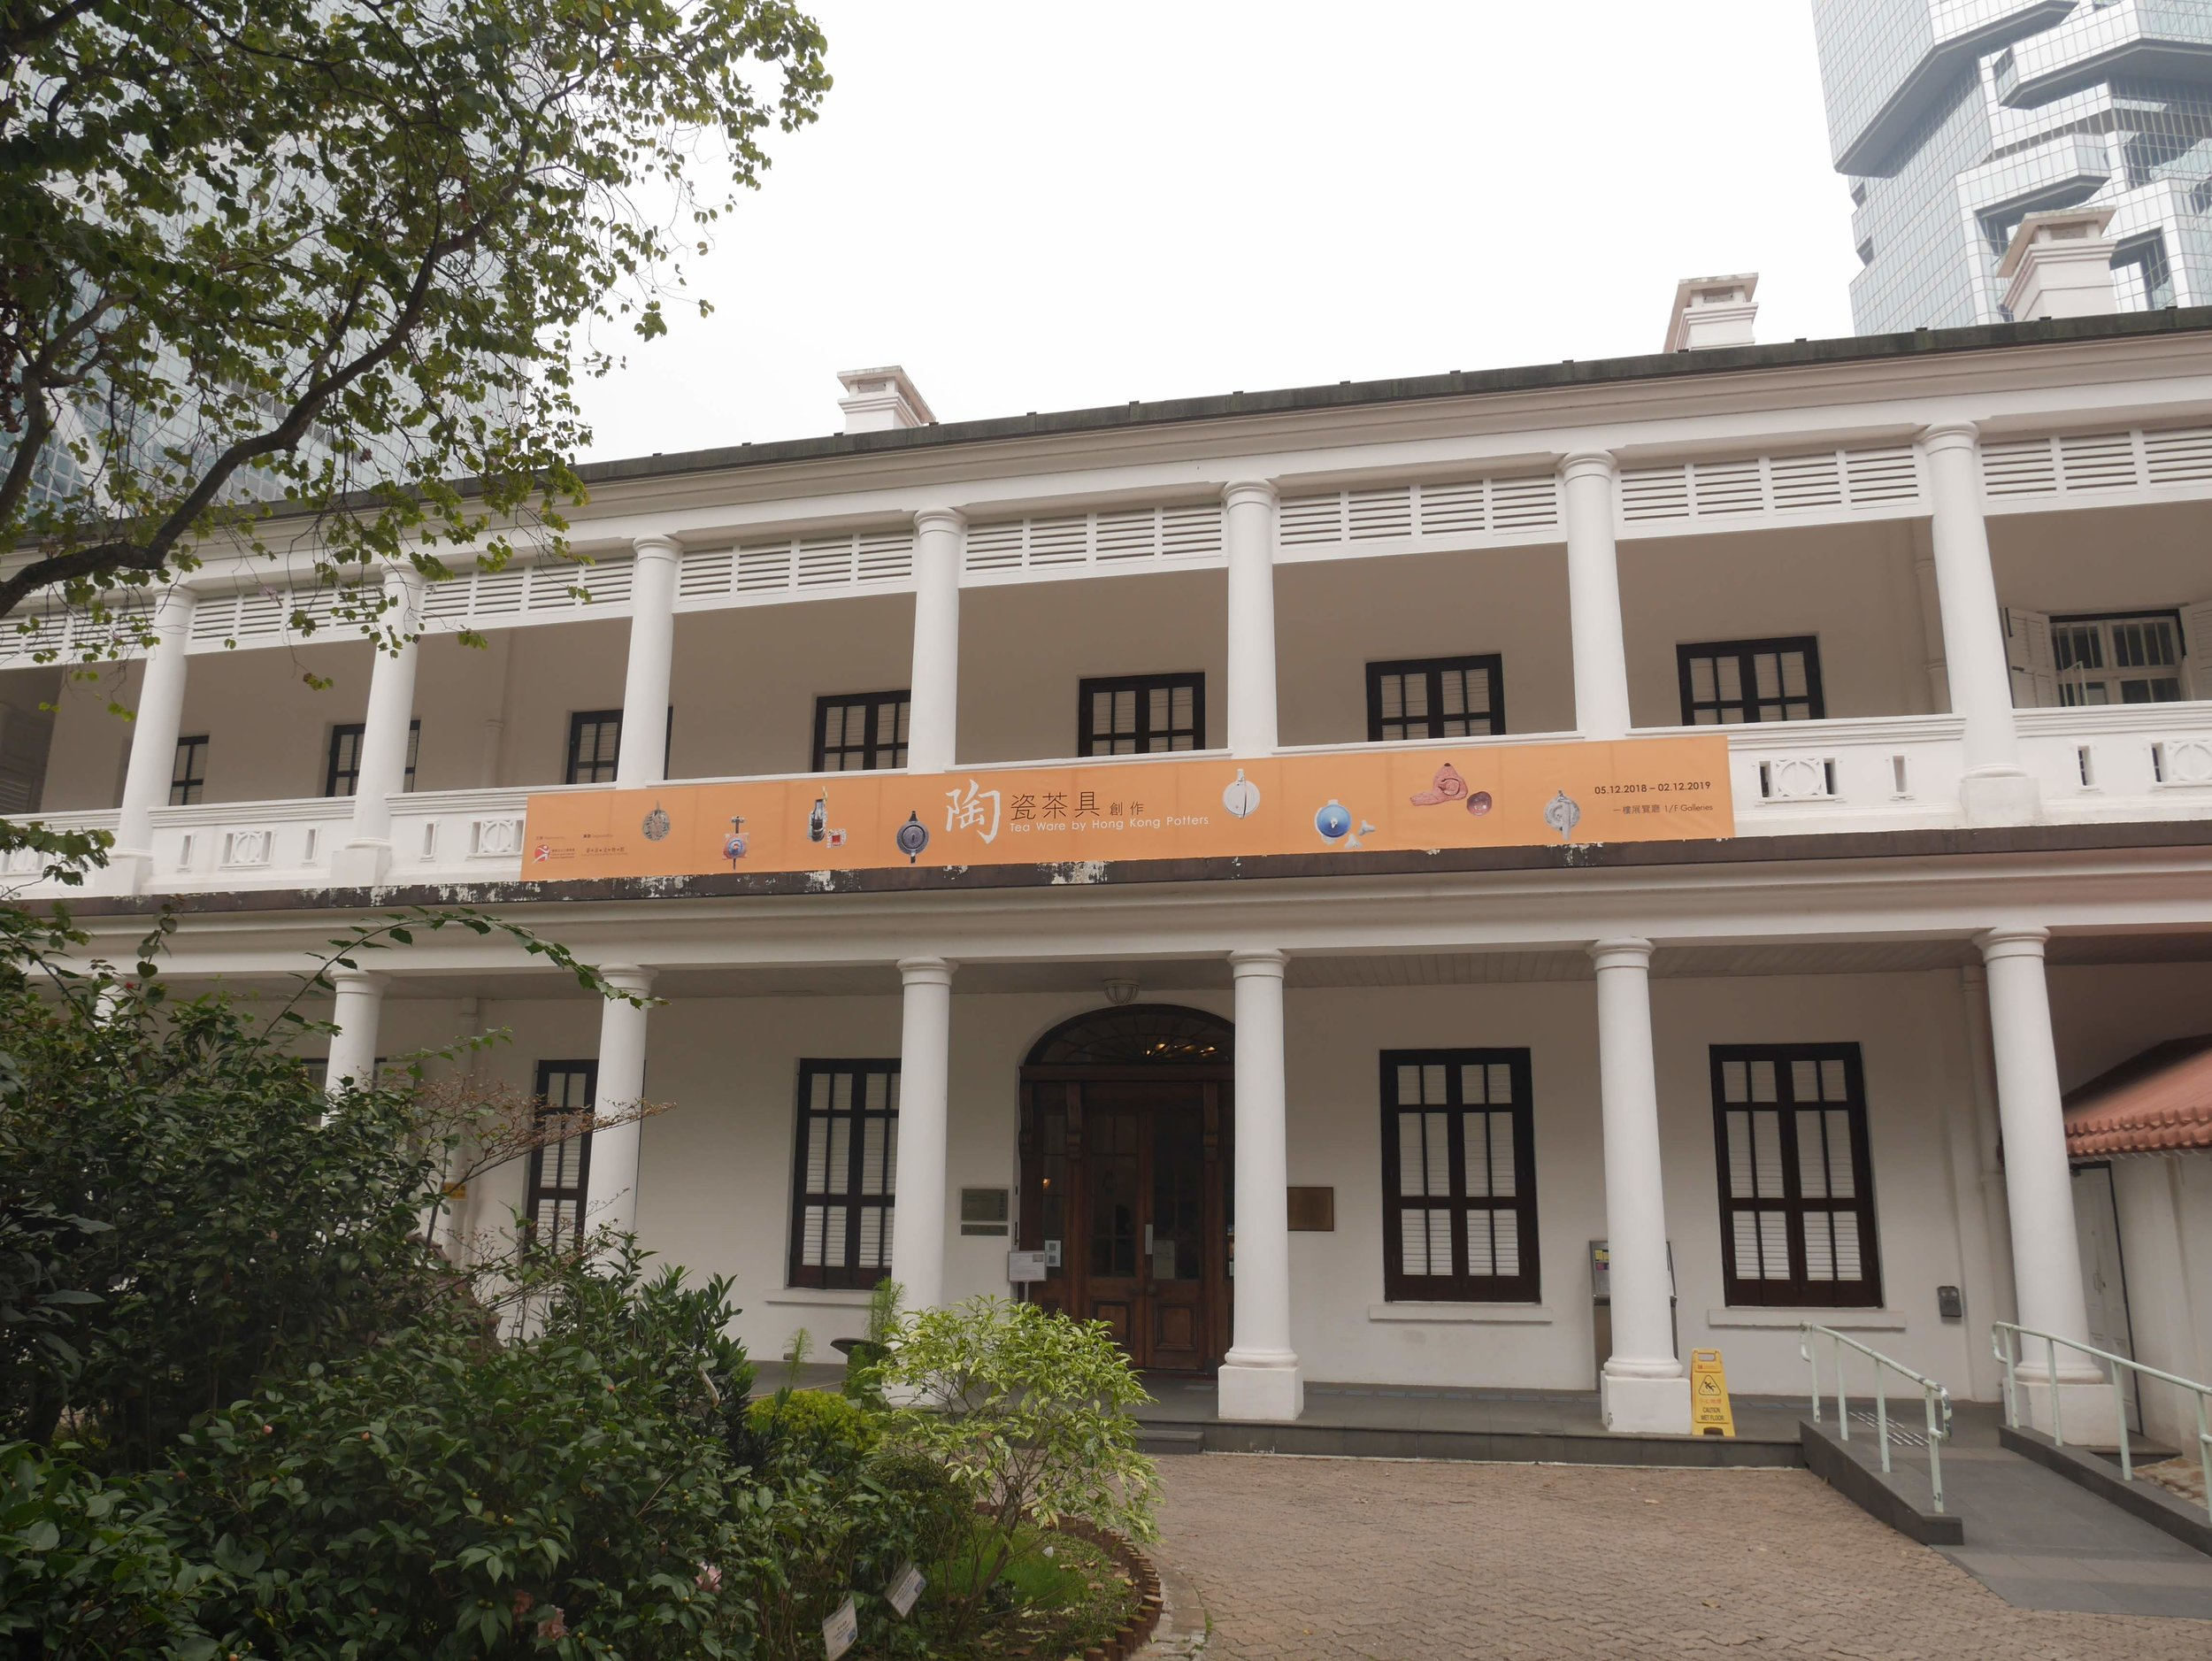 Flagstaff House Museum of Tea Ware, Hong Kong, China